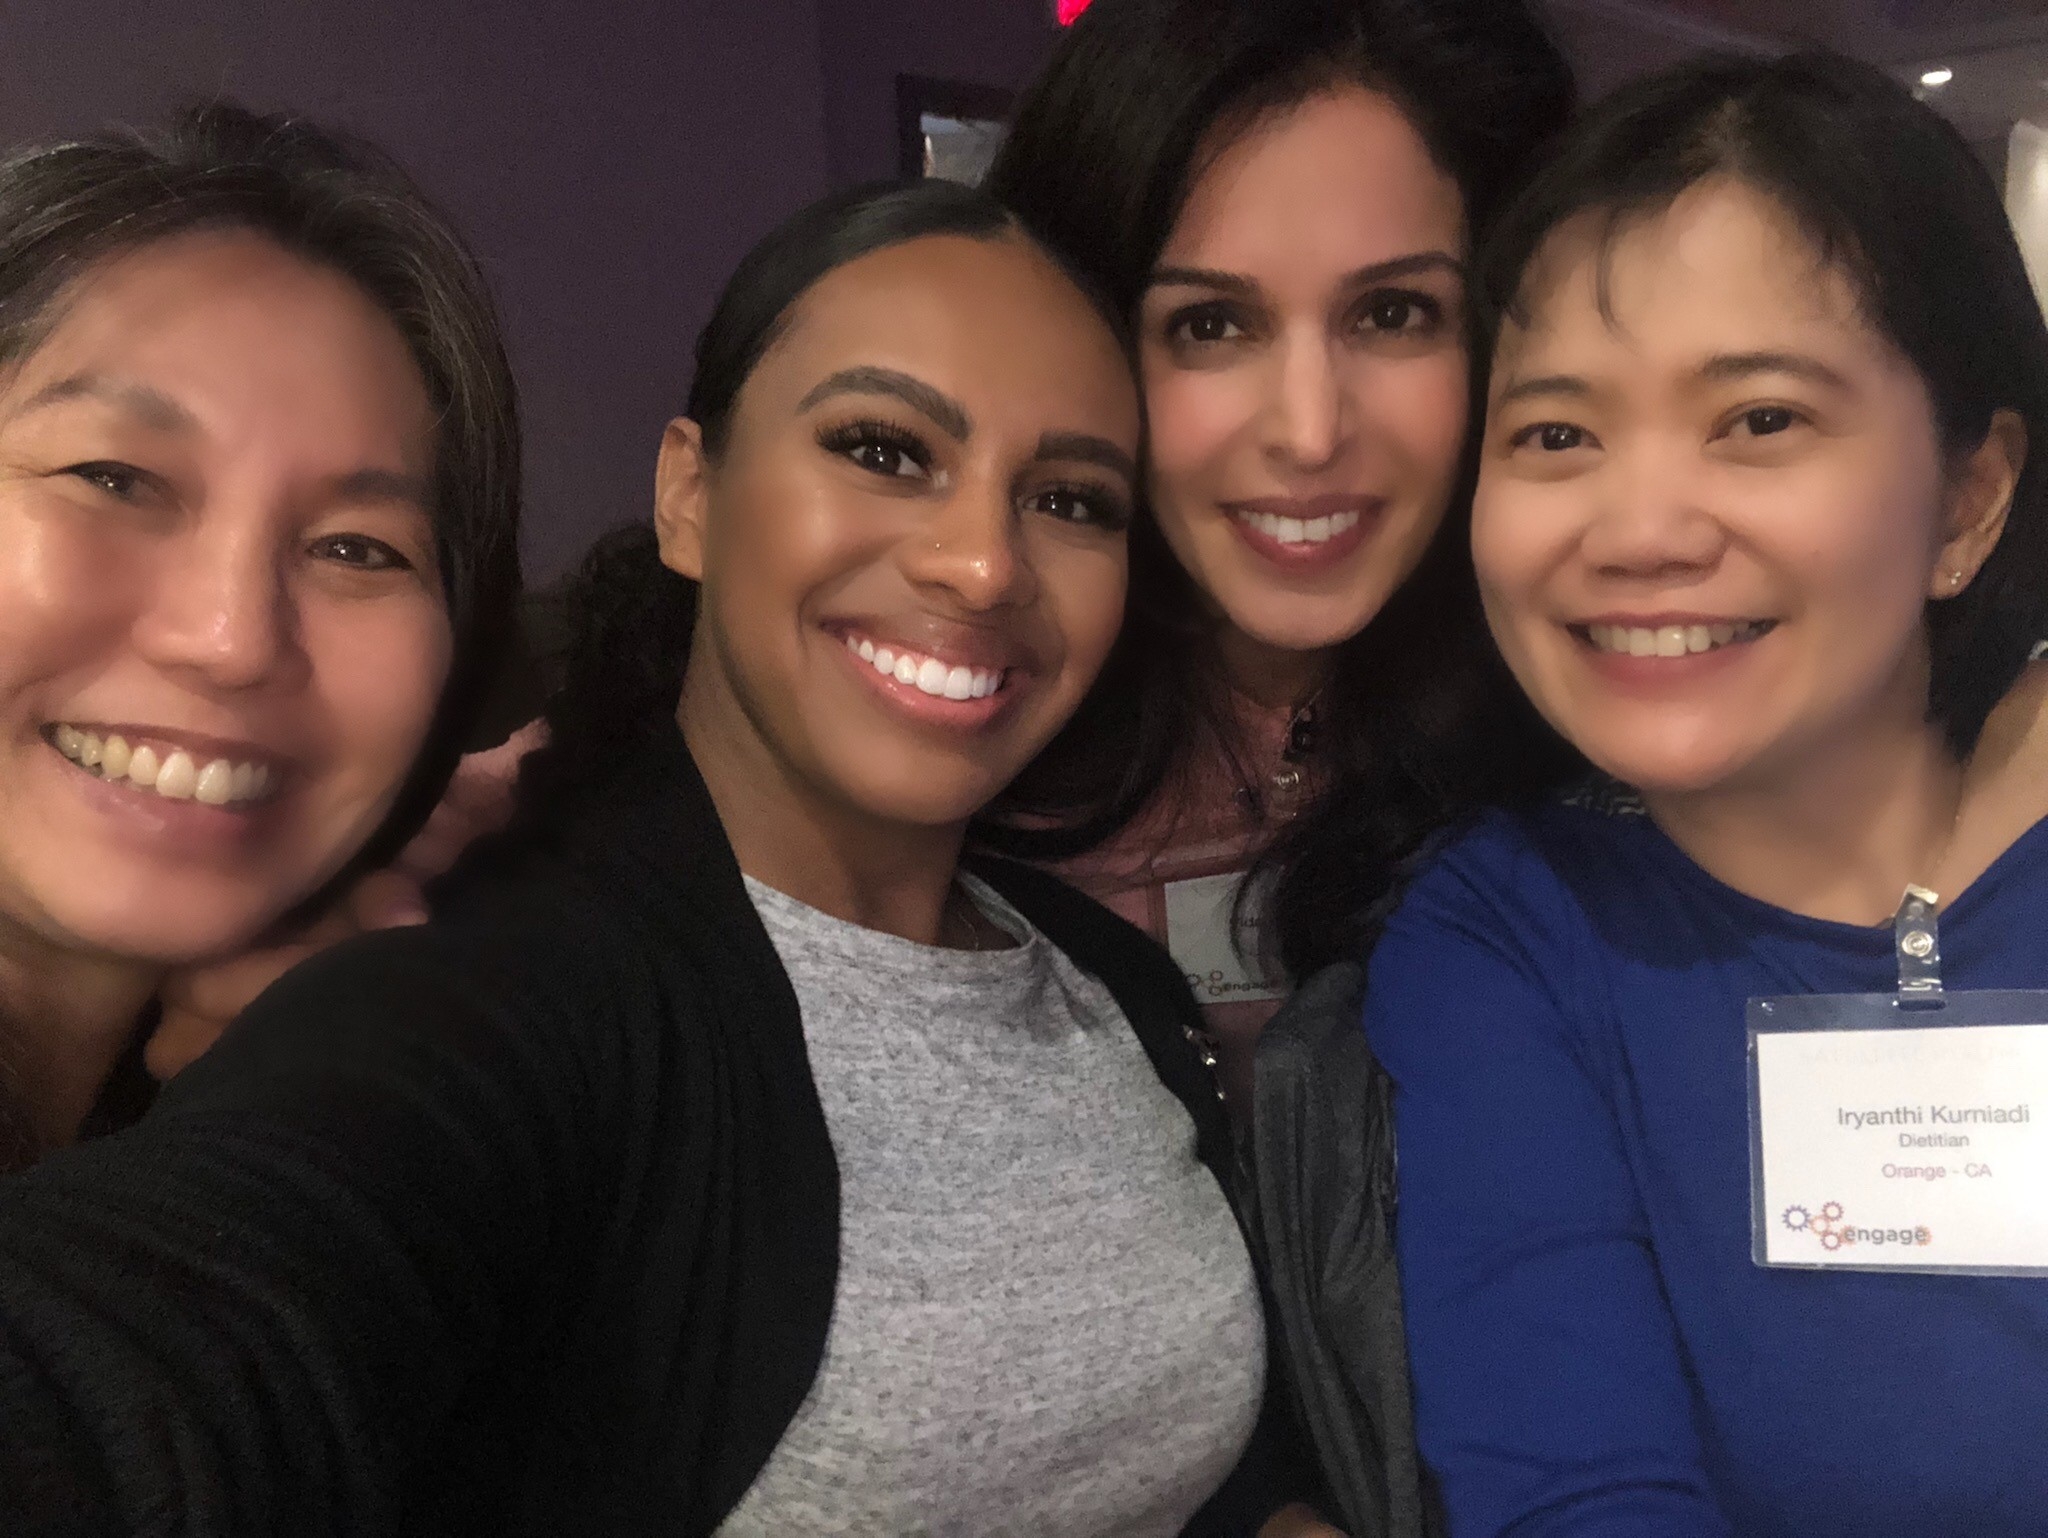 Selfie of four diverse women smiling